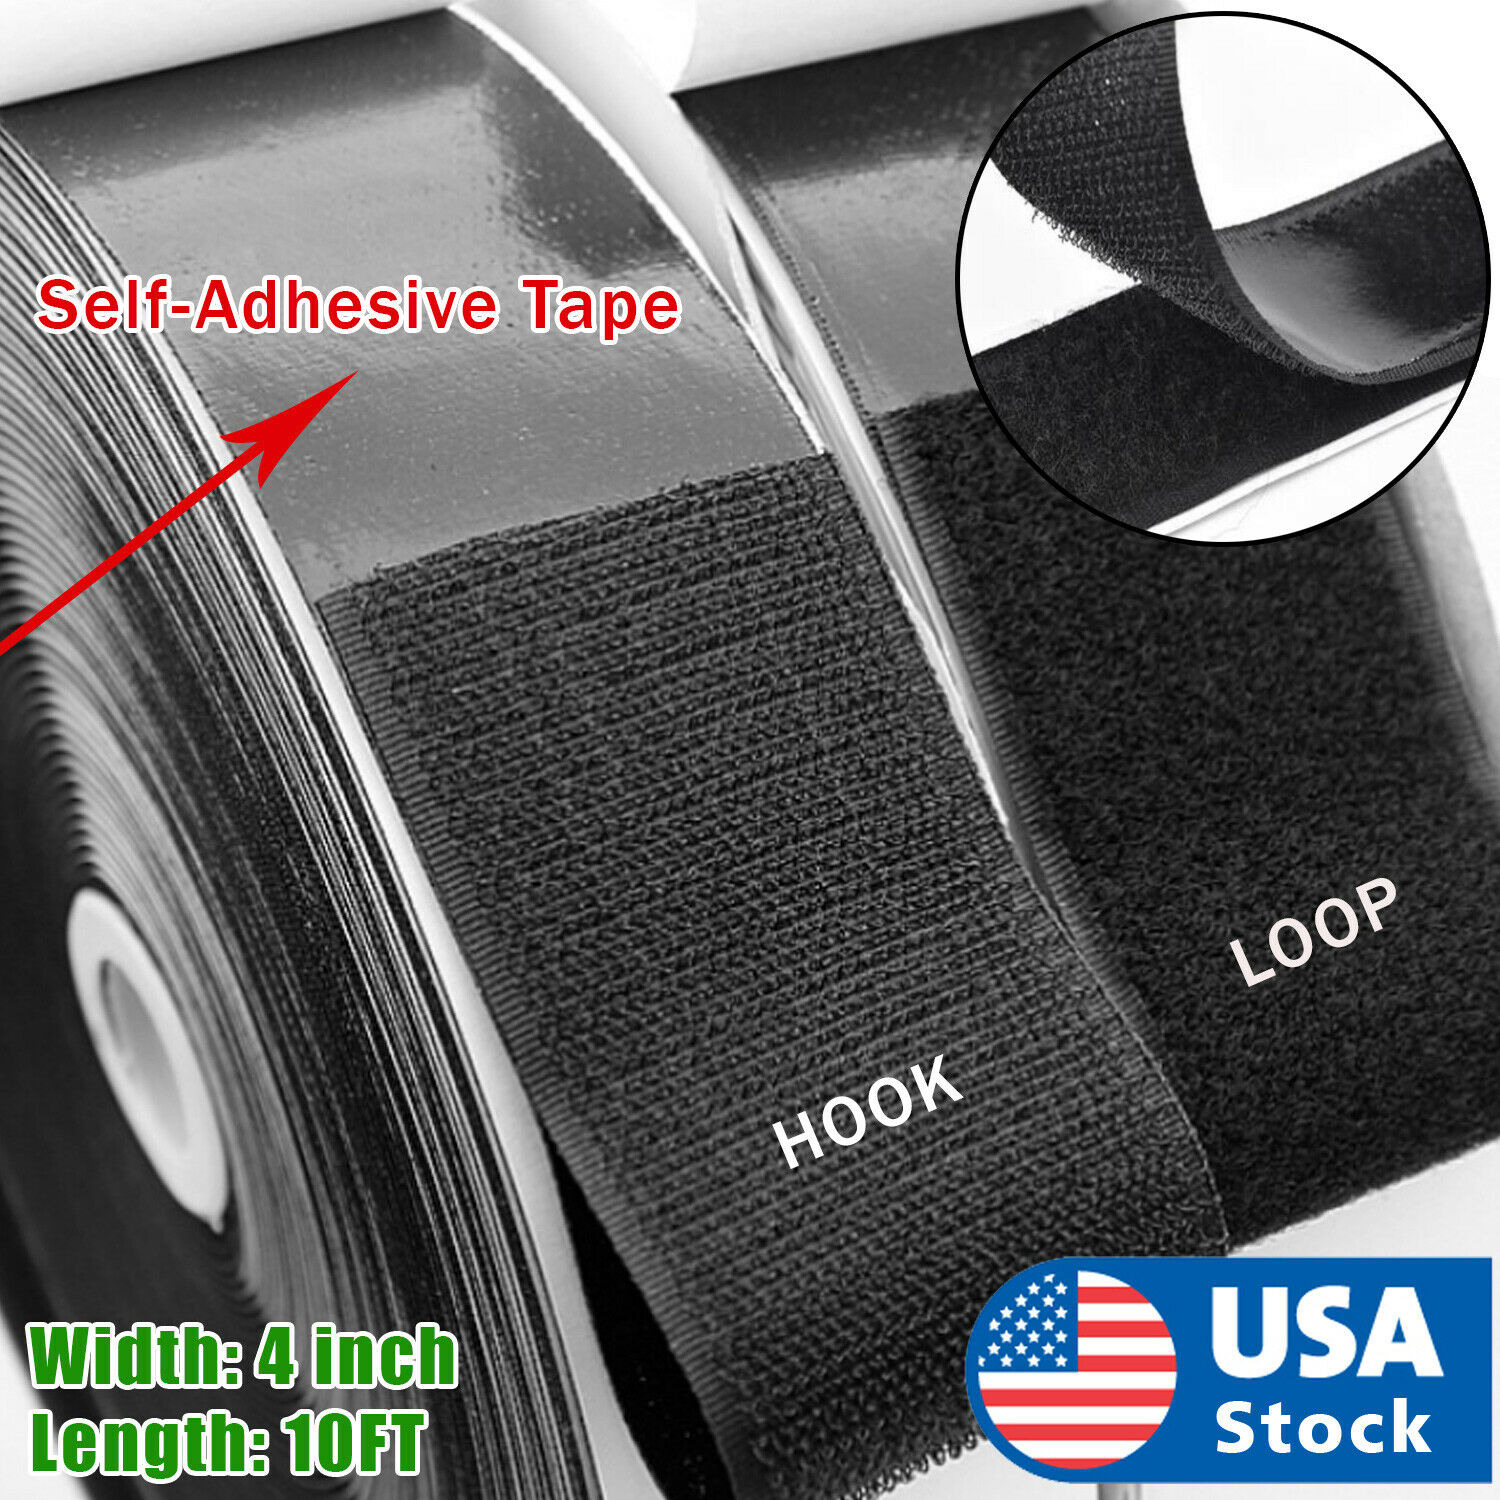 4″x10FT Hook & Loop Self Adhesive Heavy Duty Tape Industrial Sticky Fastener USA Closures & Connectors